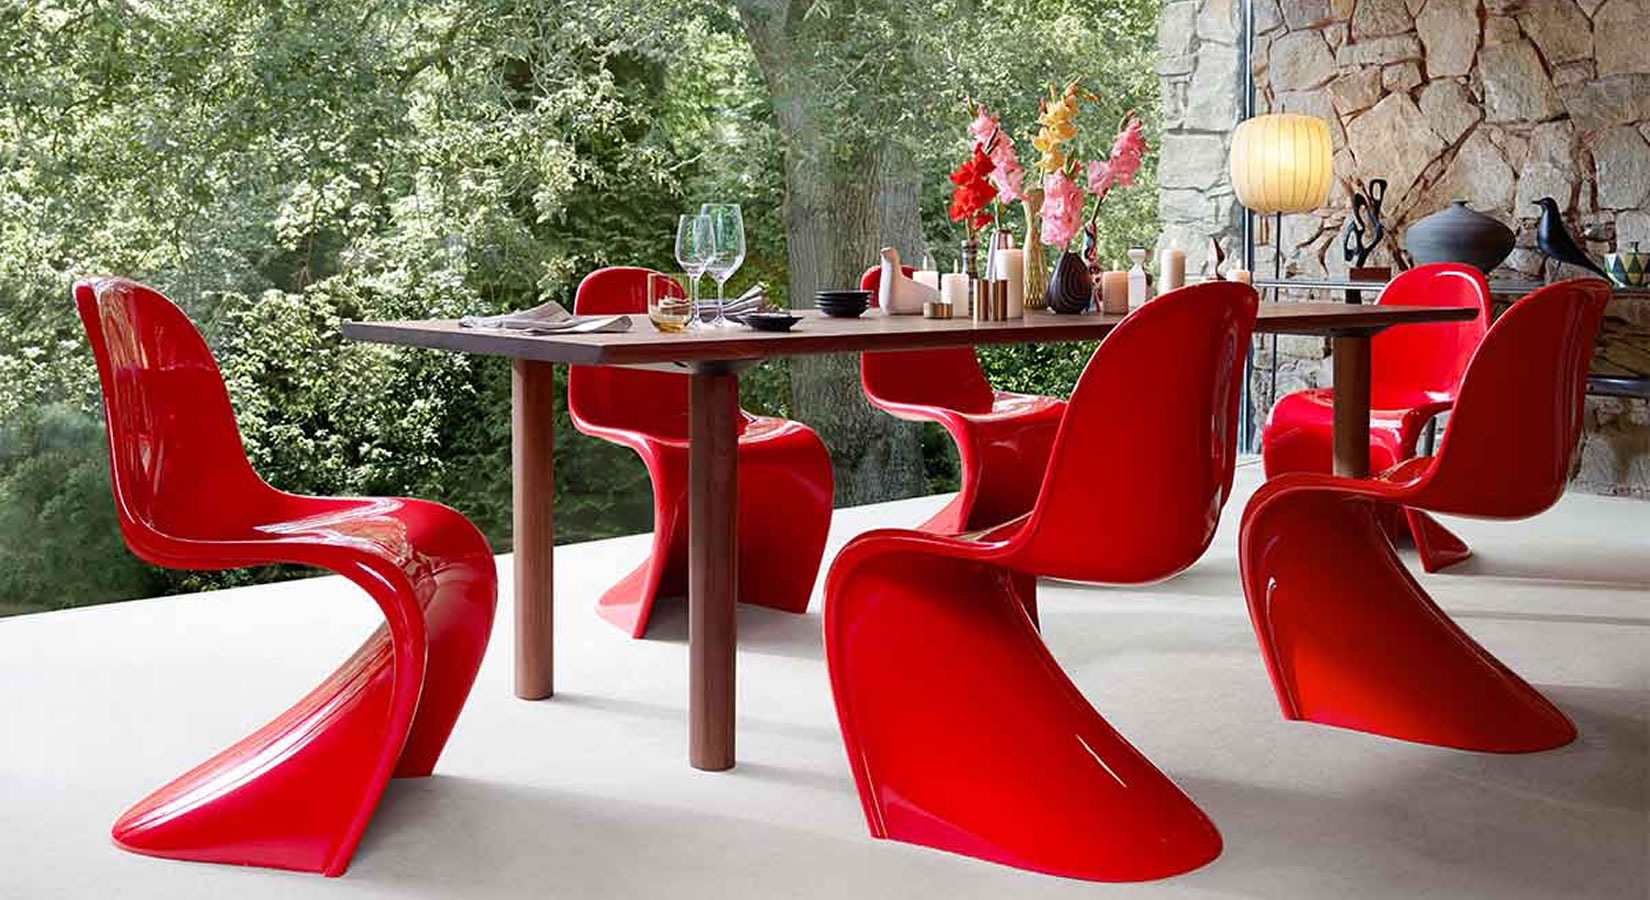 Vitra Panton Chair. How was it Made?